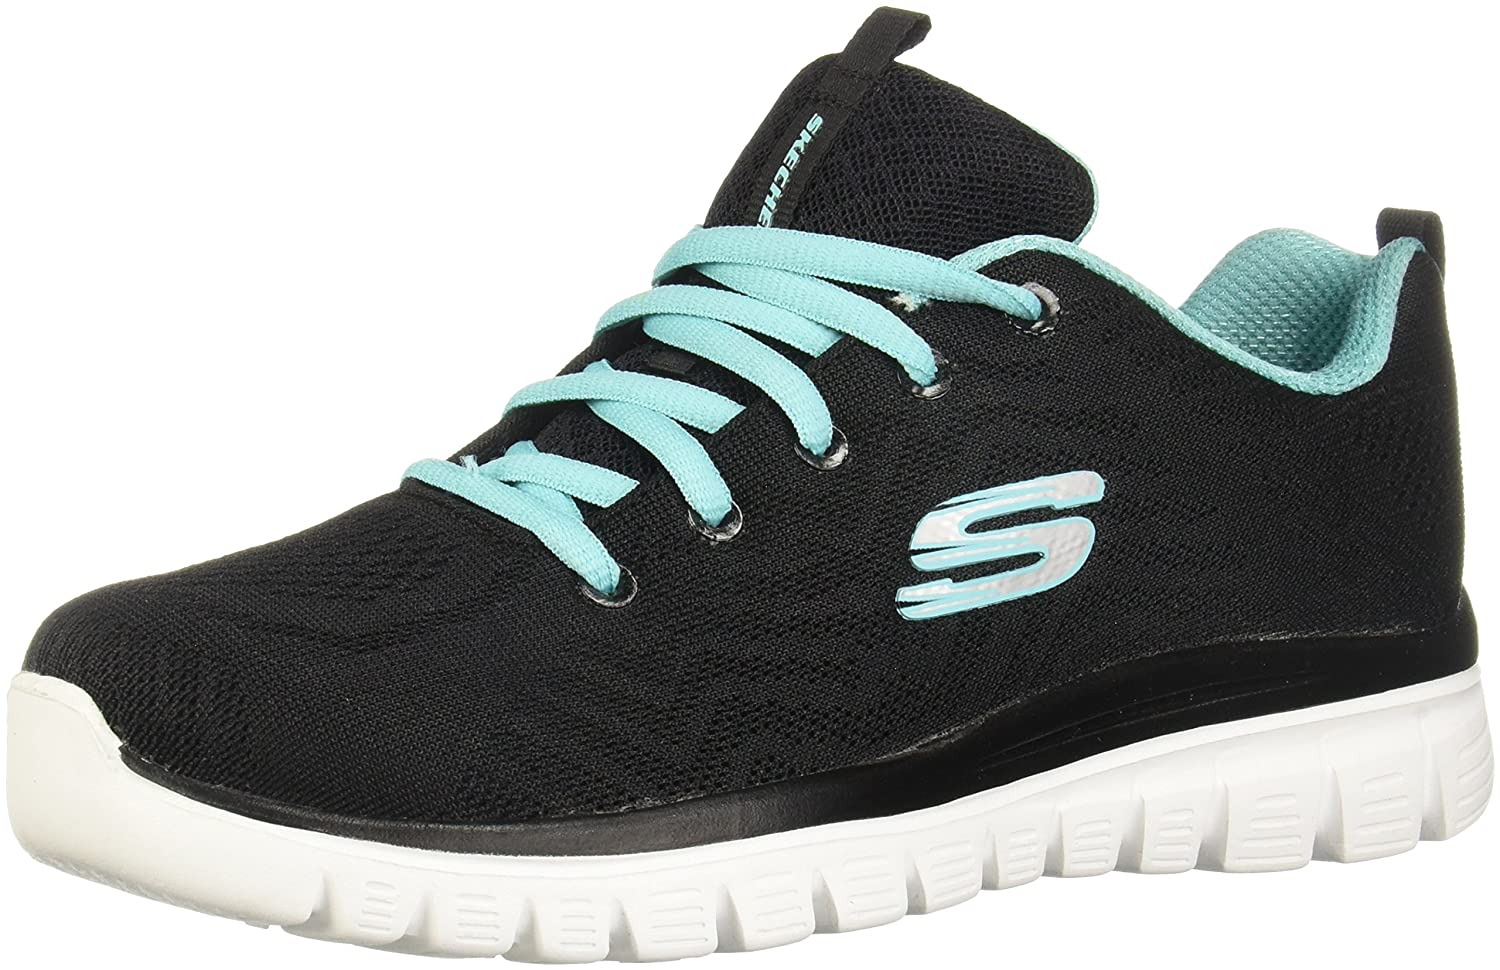 Skechers Sport Women's Graceful-Get Connected, Tenis para Mujer 38 EU|Black/Turquoise Trim